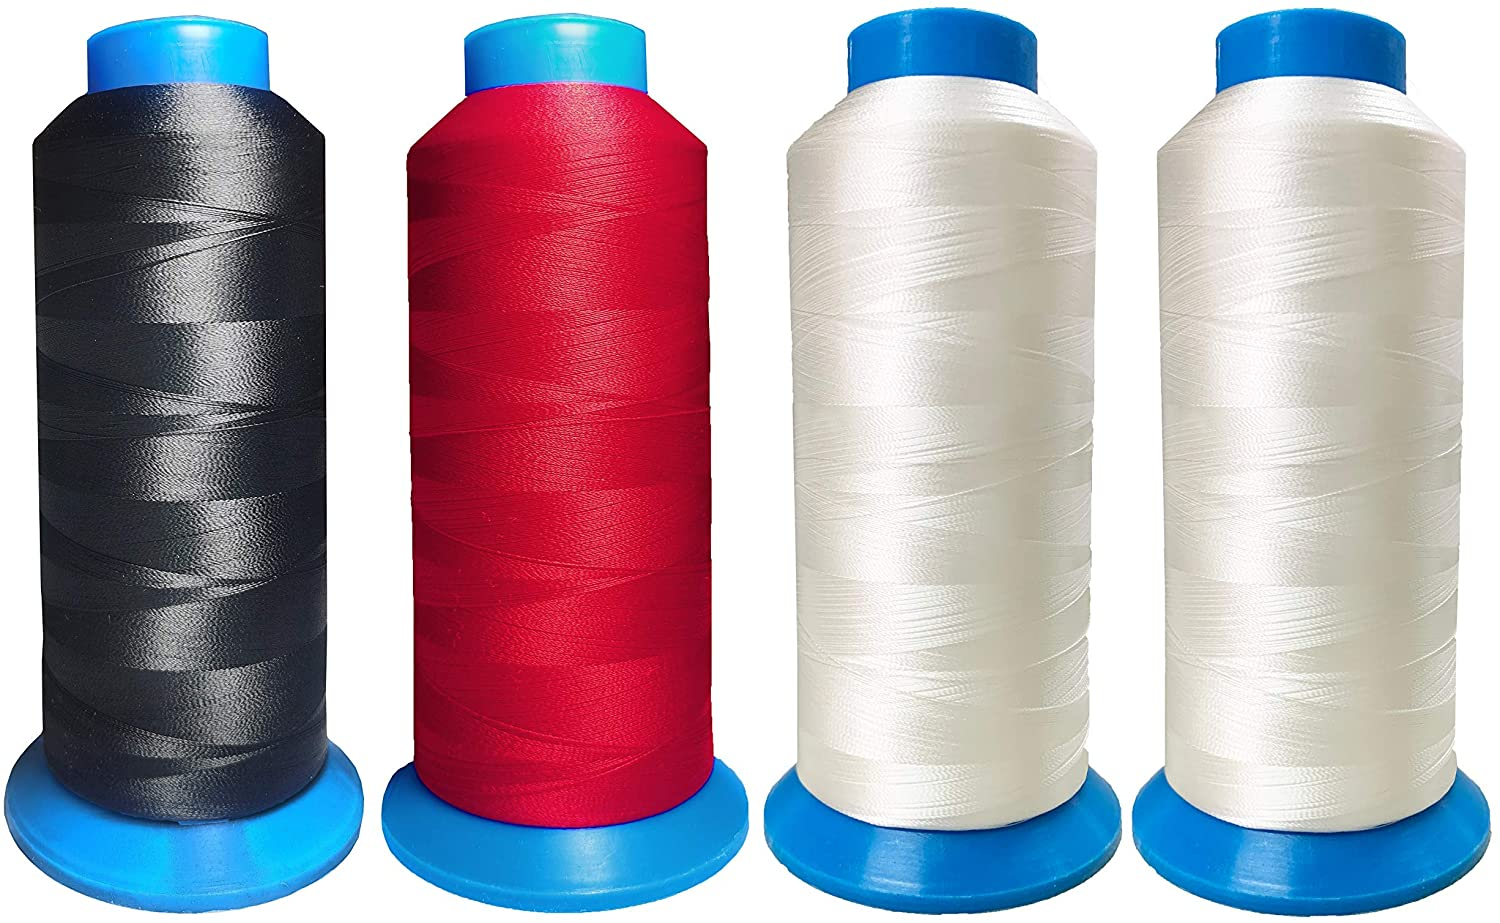 HimaPro Set of 4 Huge Spools Bobbin Thread(Black Red White White) for Embroidery Machine and Sewing Machine - 5500 Yards Each - 100% Polyester